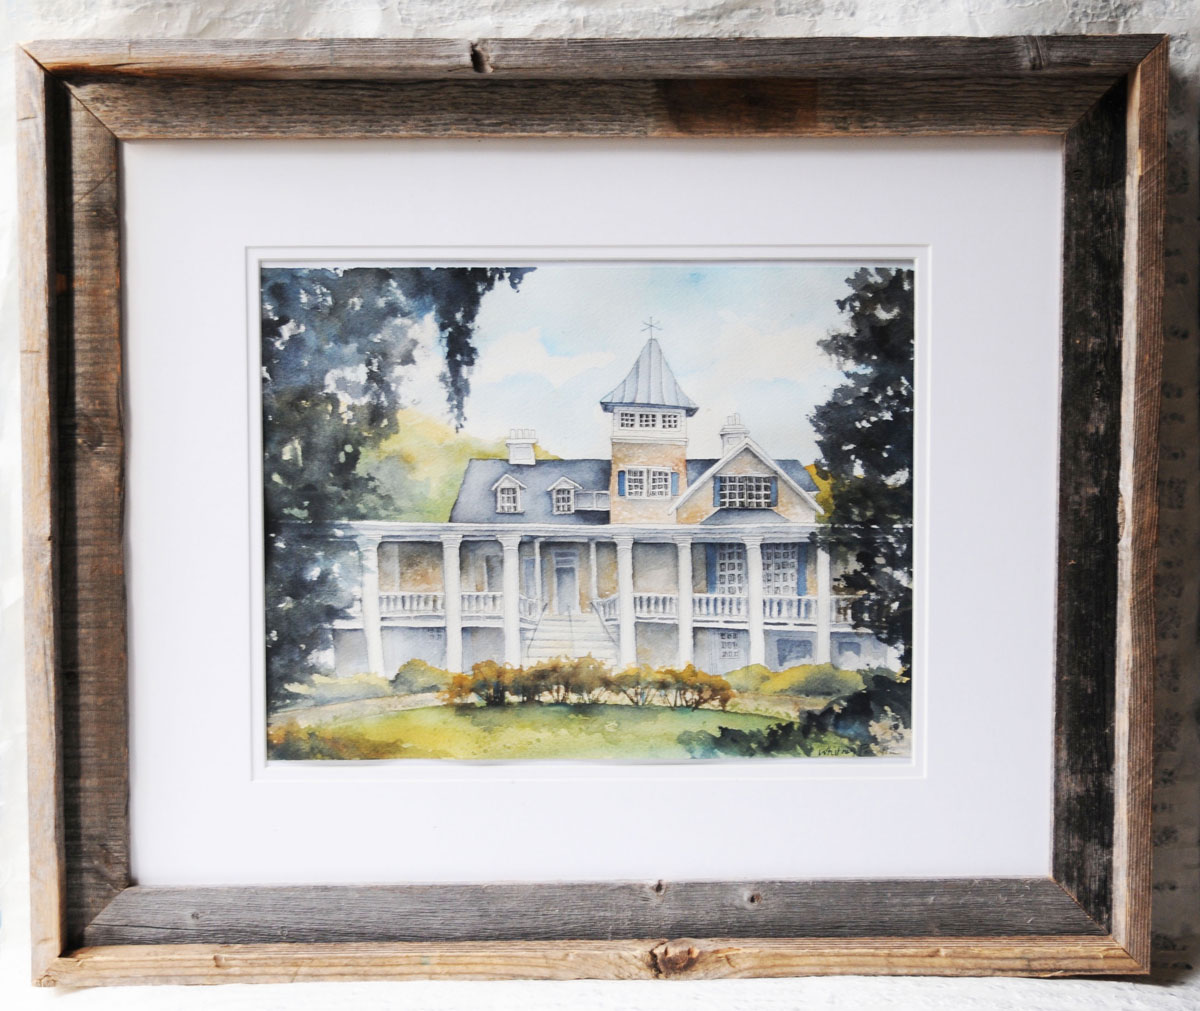 A framed watercolor painting of Magnolia Plantation in Charleston, SC.